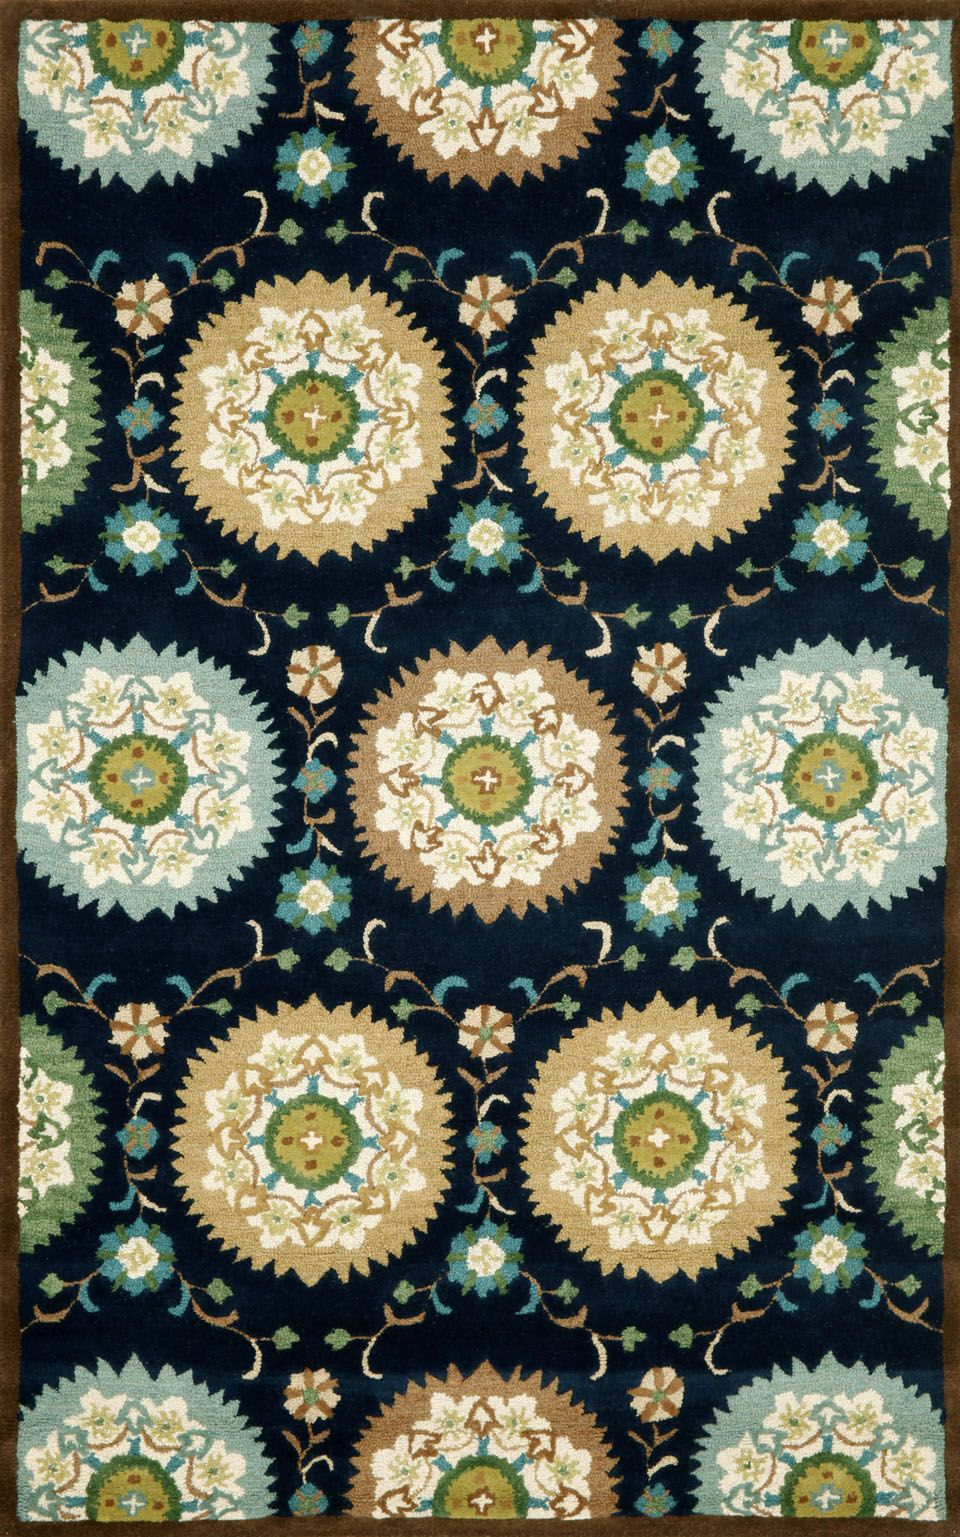 Chic hand tufted rugs for sale, at Hadinger Area Rug Gallery! (Nationwide shipping available.) C14Z 9674/33 Suzanie Denim